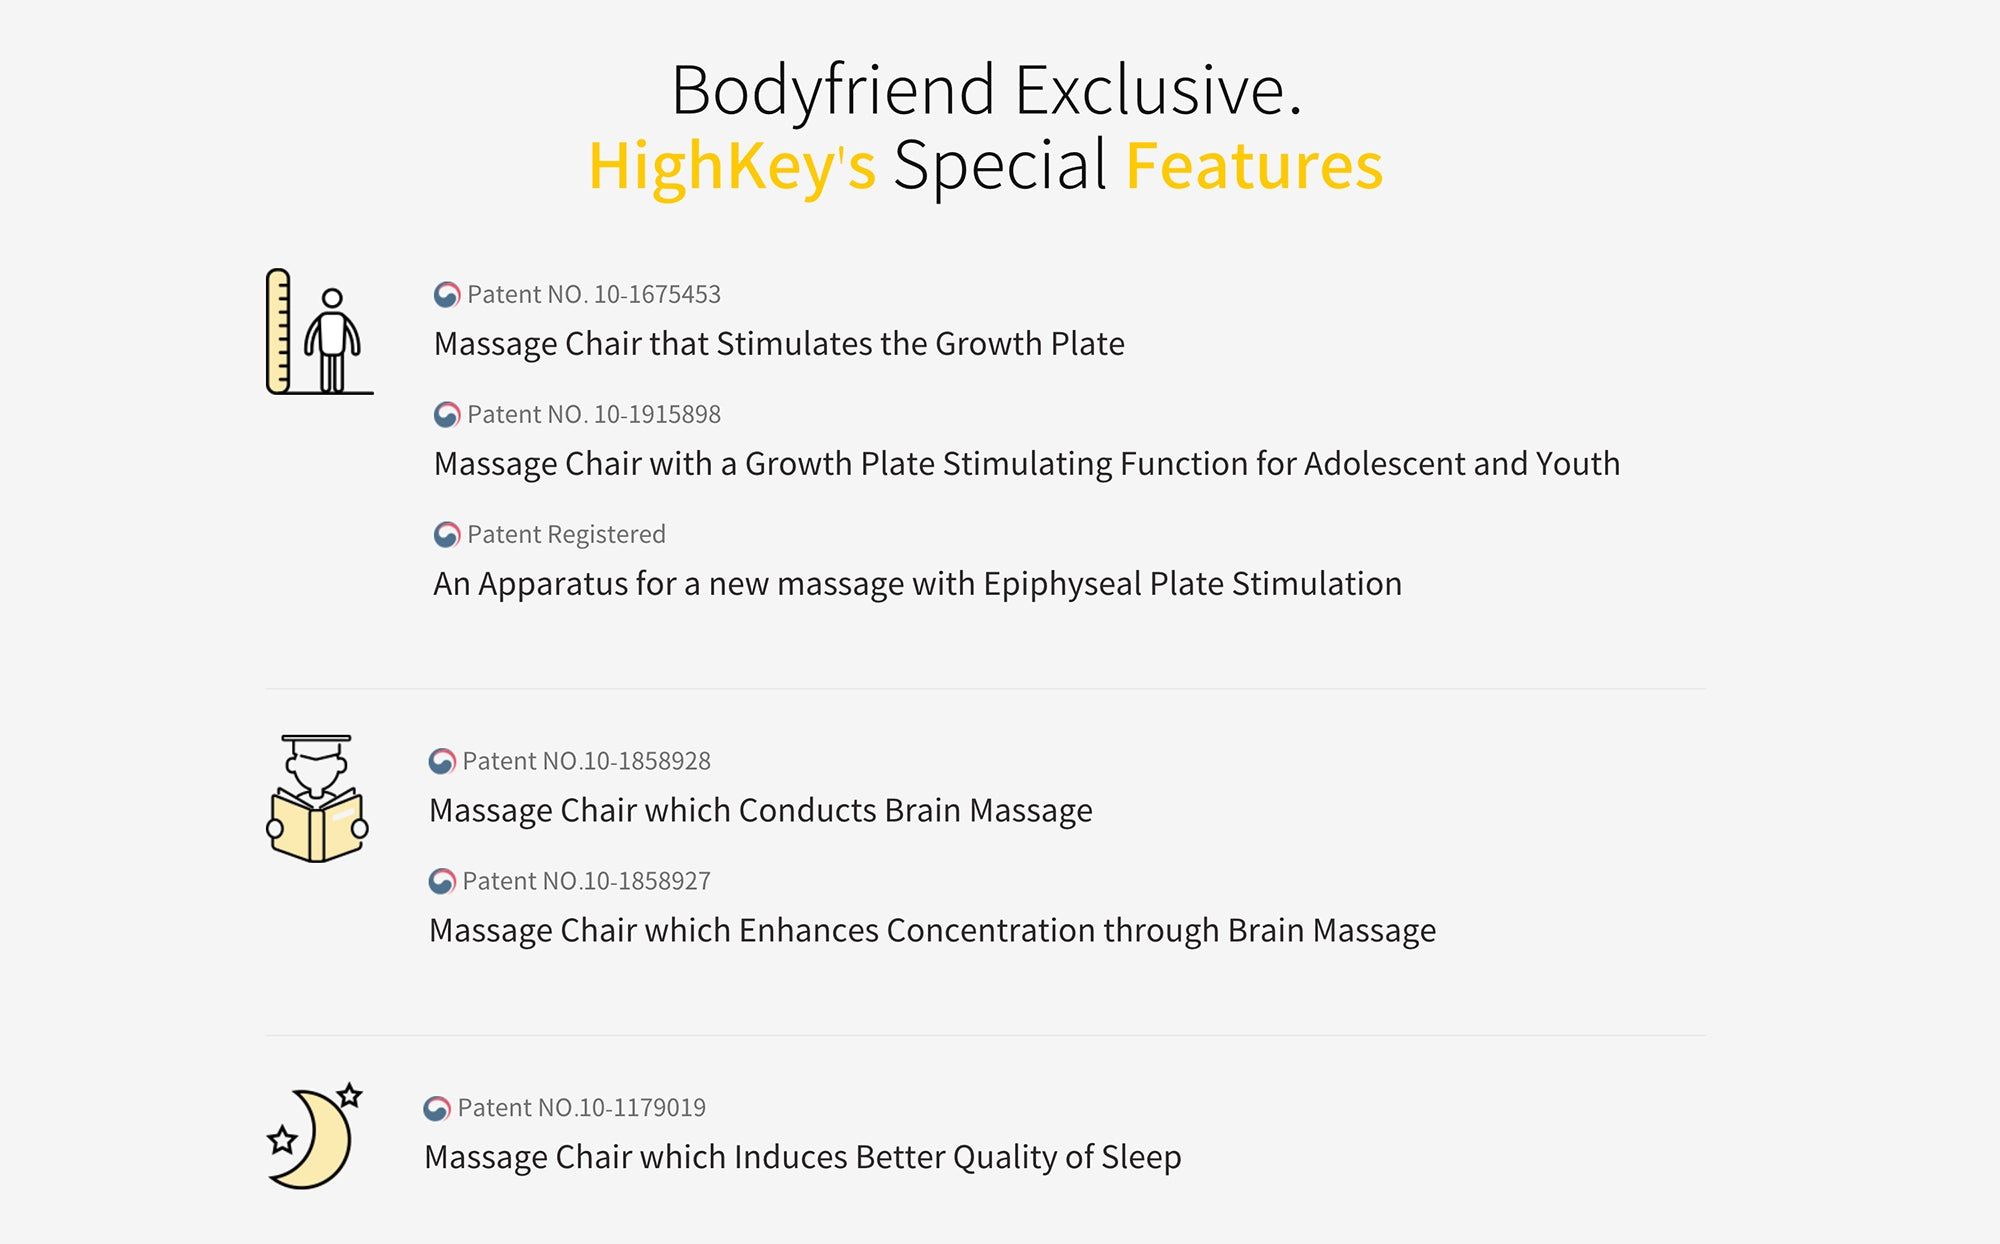 Bodyfriend Exclusive, HighKey's Special Features